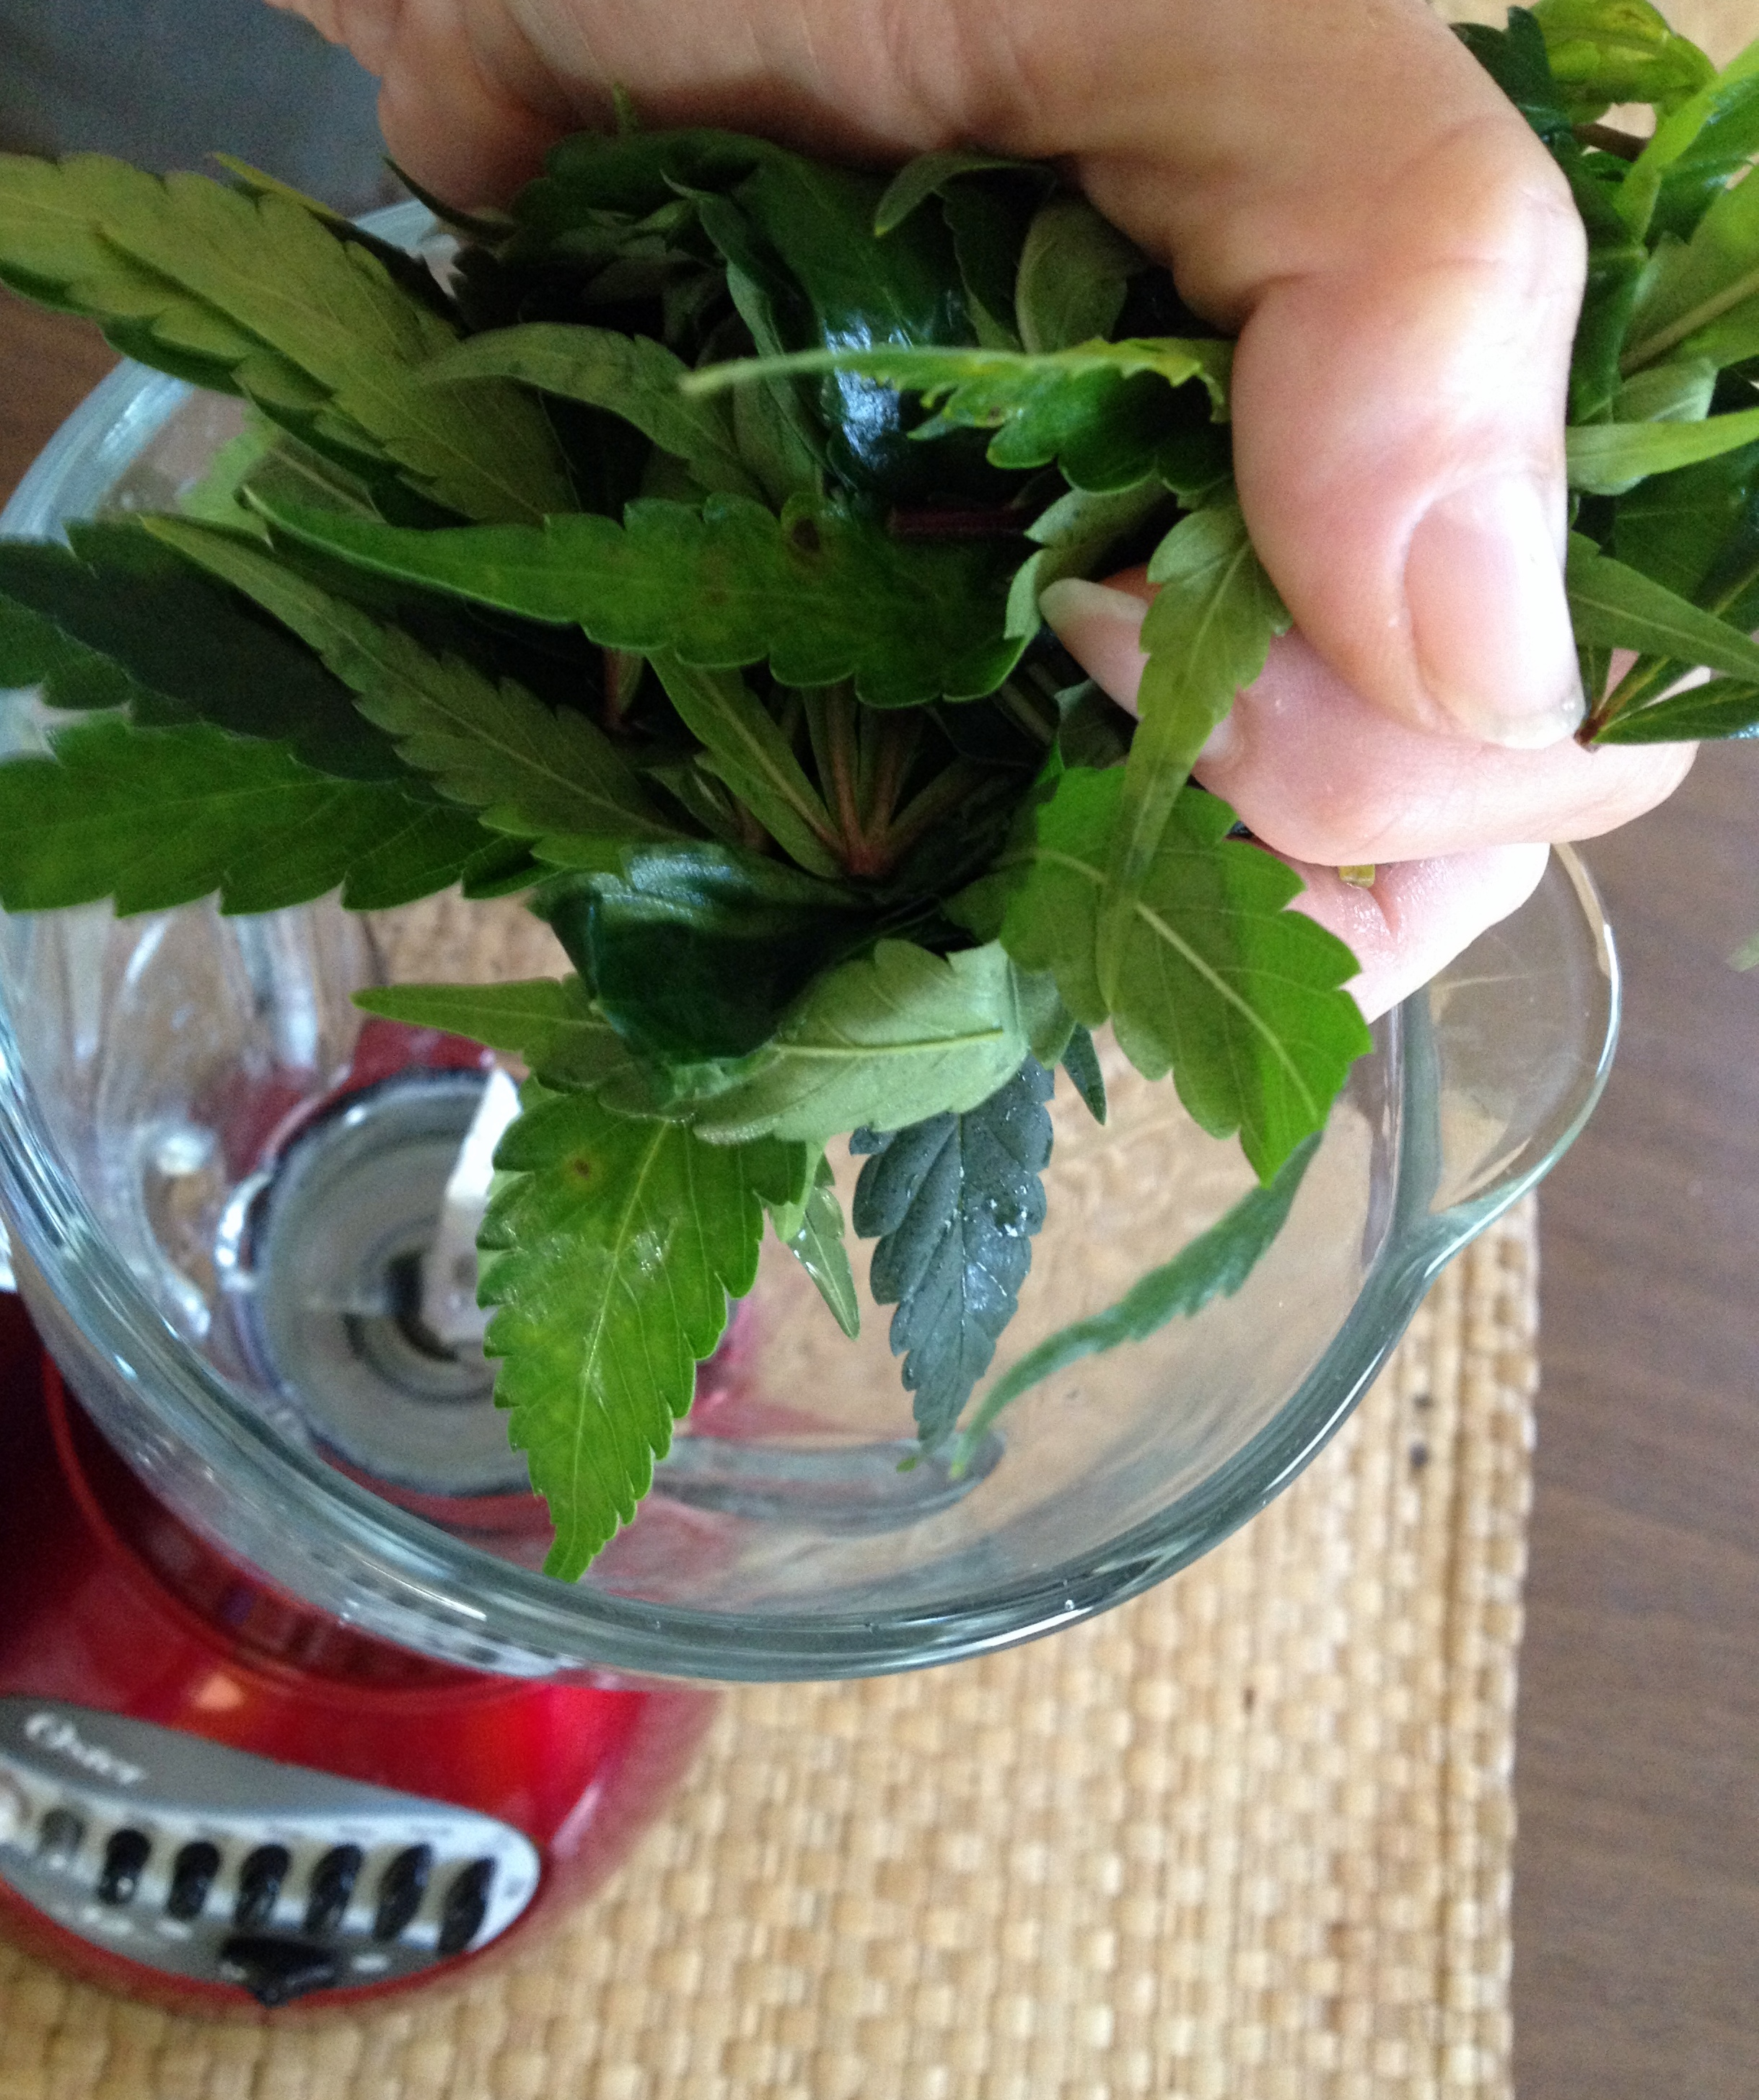 One handful... - ...of leaf in your favorite fruit smoothie is a powerful remedy and preventive against inflammation and subsequent pain; infection, digestive issues, and more, with no psychoactive properties.Favorite Smoothie: One banana, 1/4 cup berries, one cup of aloe vera juice (lowers blood sugars), handful of fresh leaves.Be creative, skies the limit - drink the rainbow!Photo: Sharon Letts